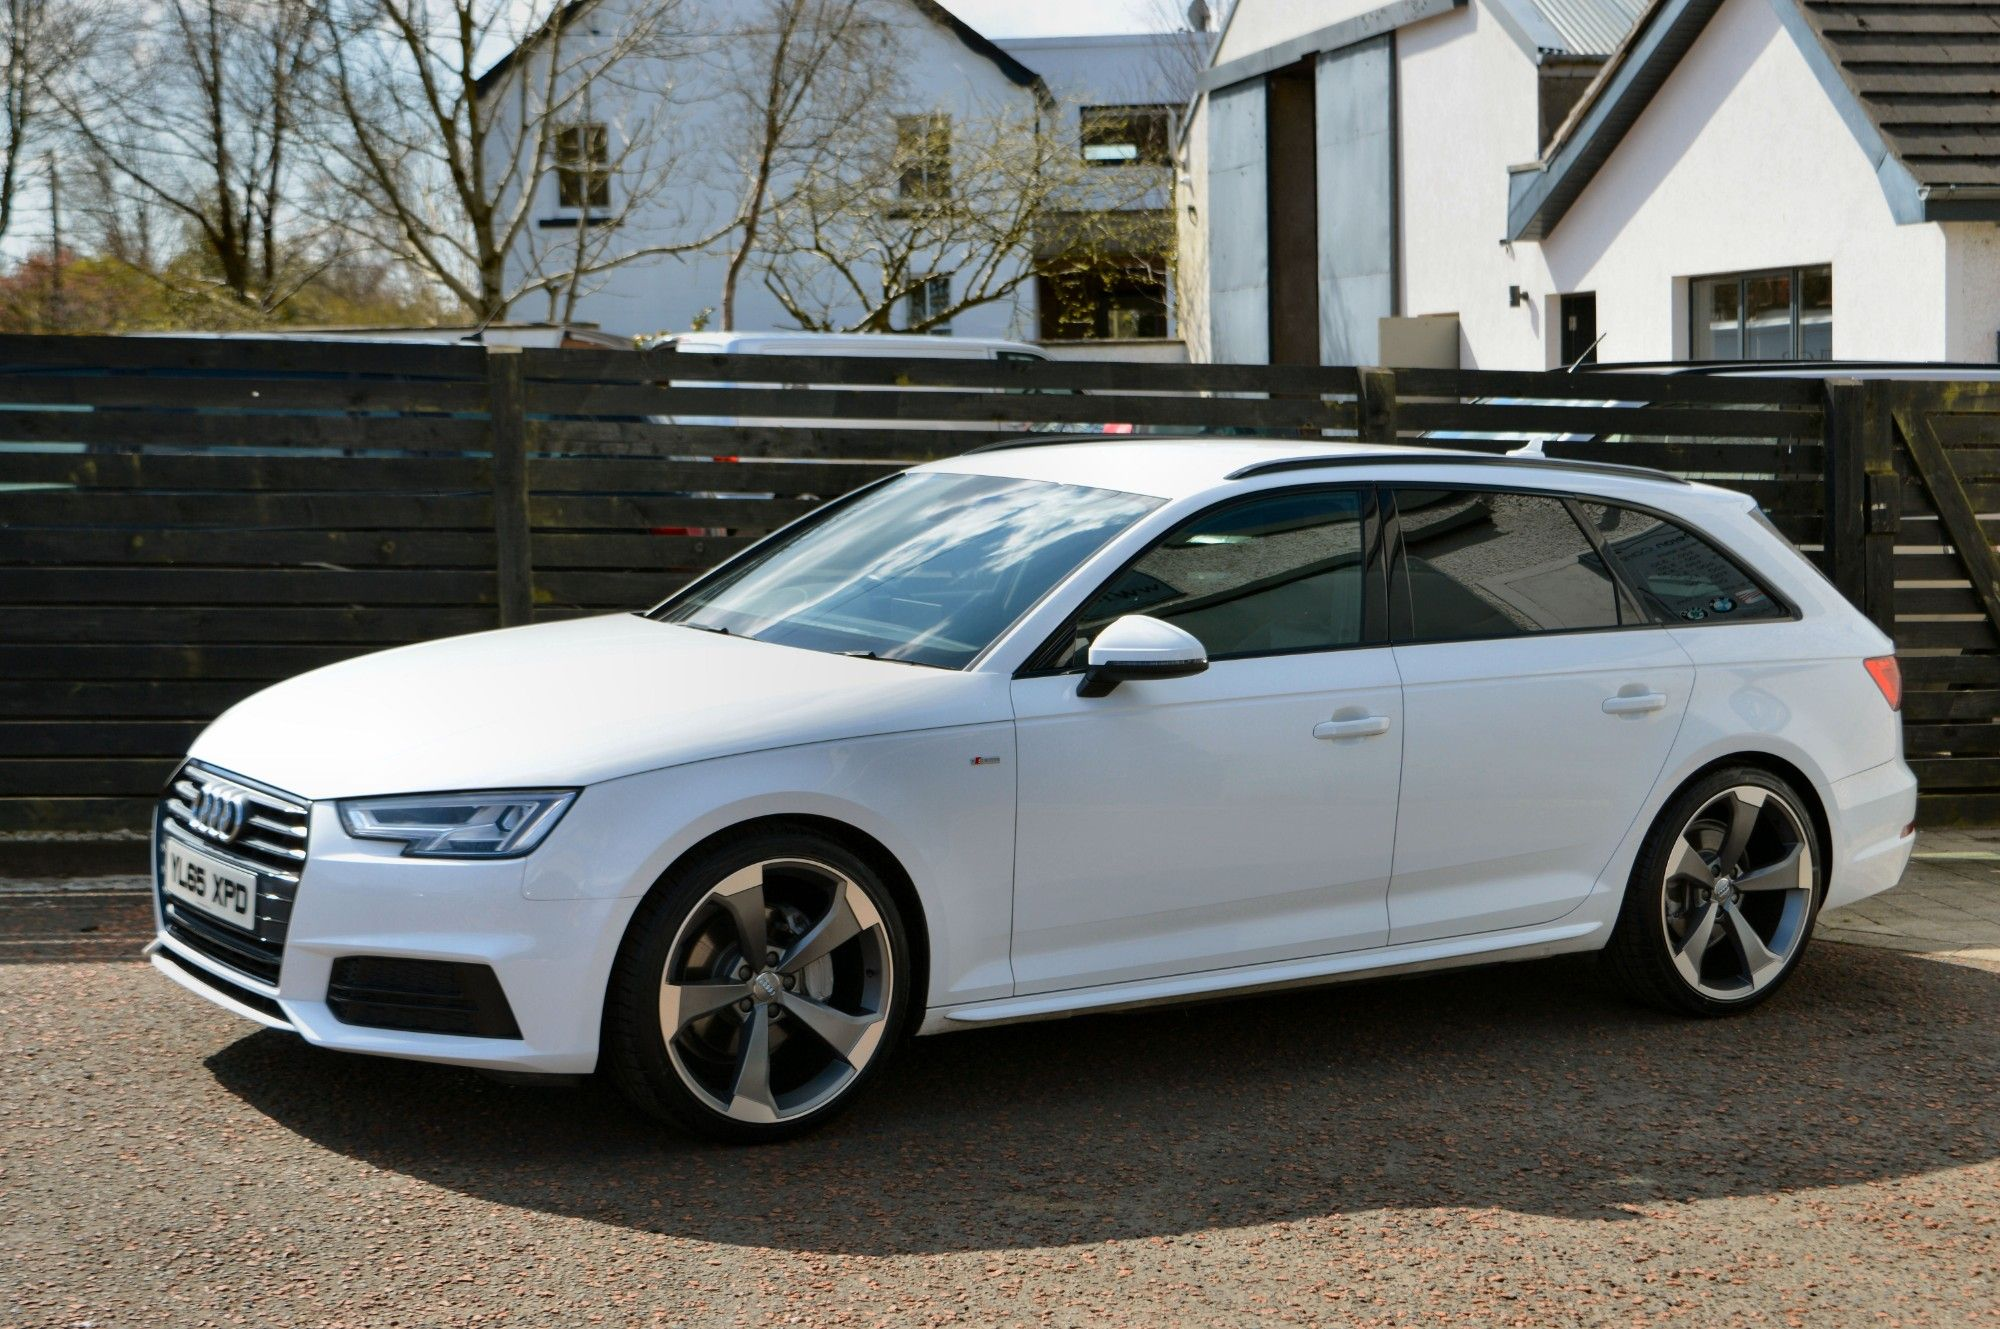 USED 2016 65 AUDI A4 2.0 AVANT TDI S LINE 5d 188 BHP 6 MONTHS RAC WARRANTY FREE + 12 MONTHS ROAD SIDE RECOVERY!